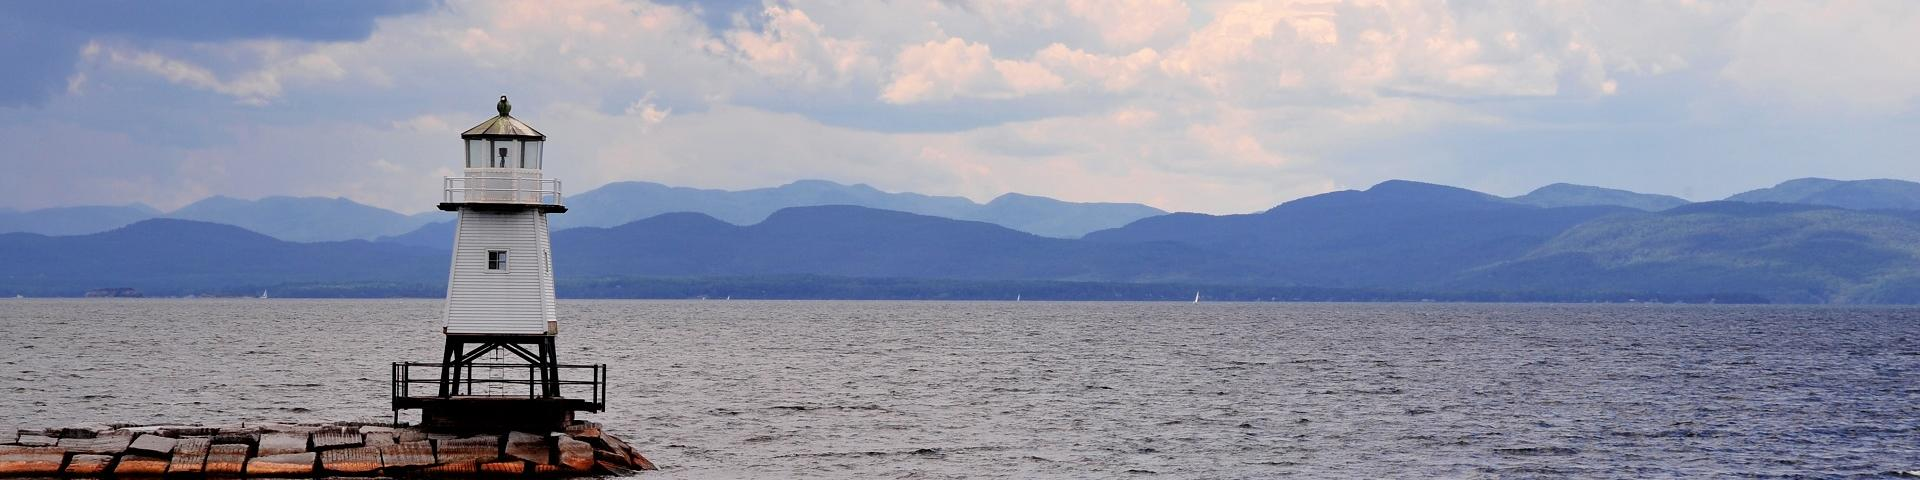 Lighthouse on Lake Champlain with view of mountains